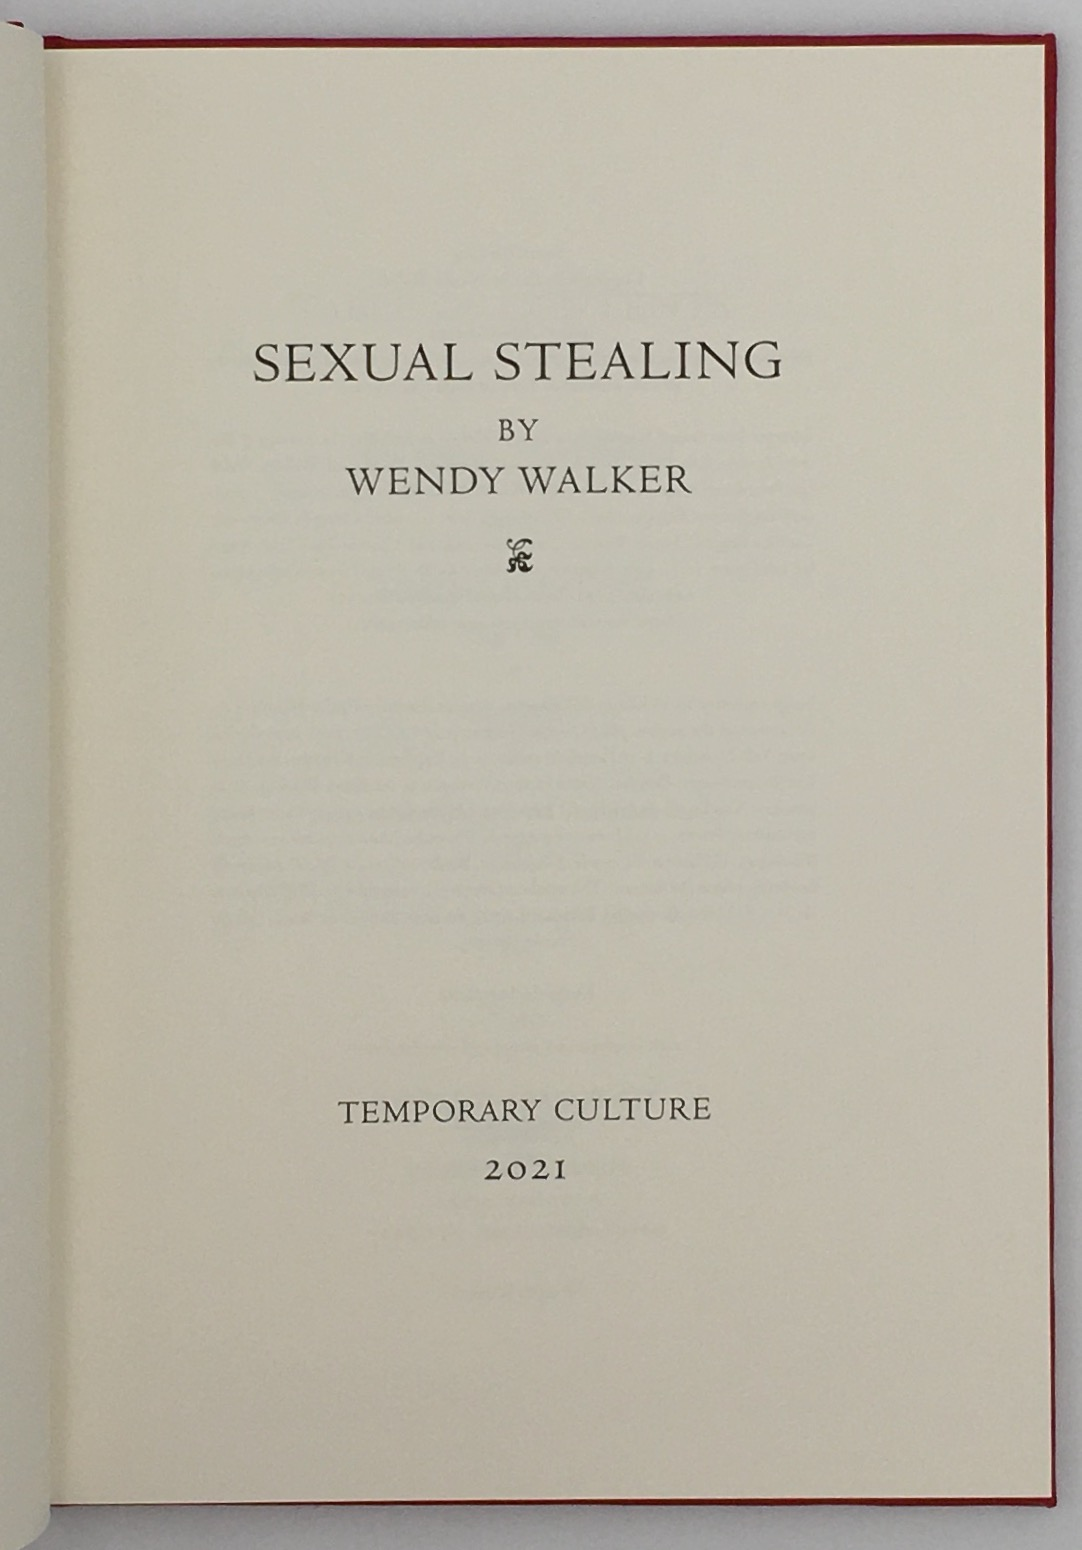 Sexual Stealing - title page